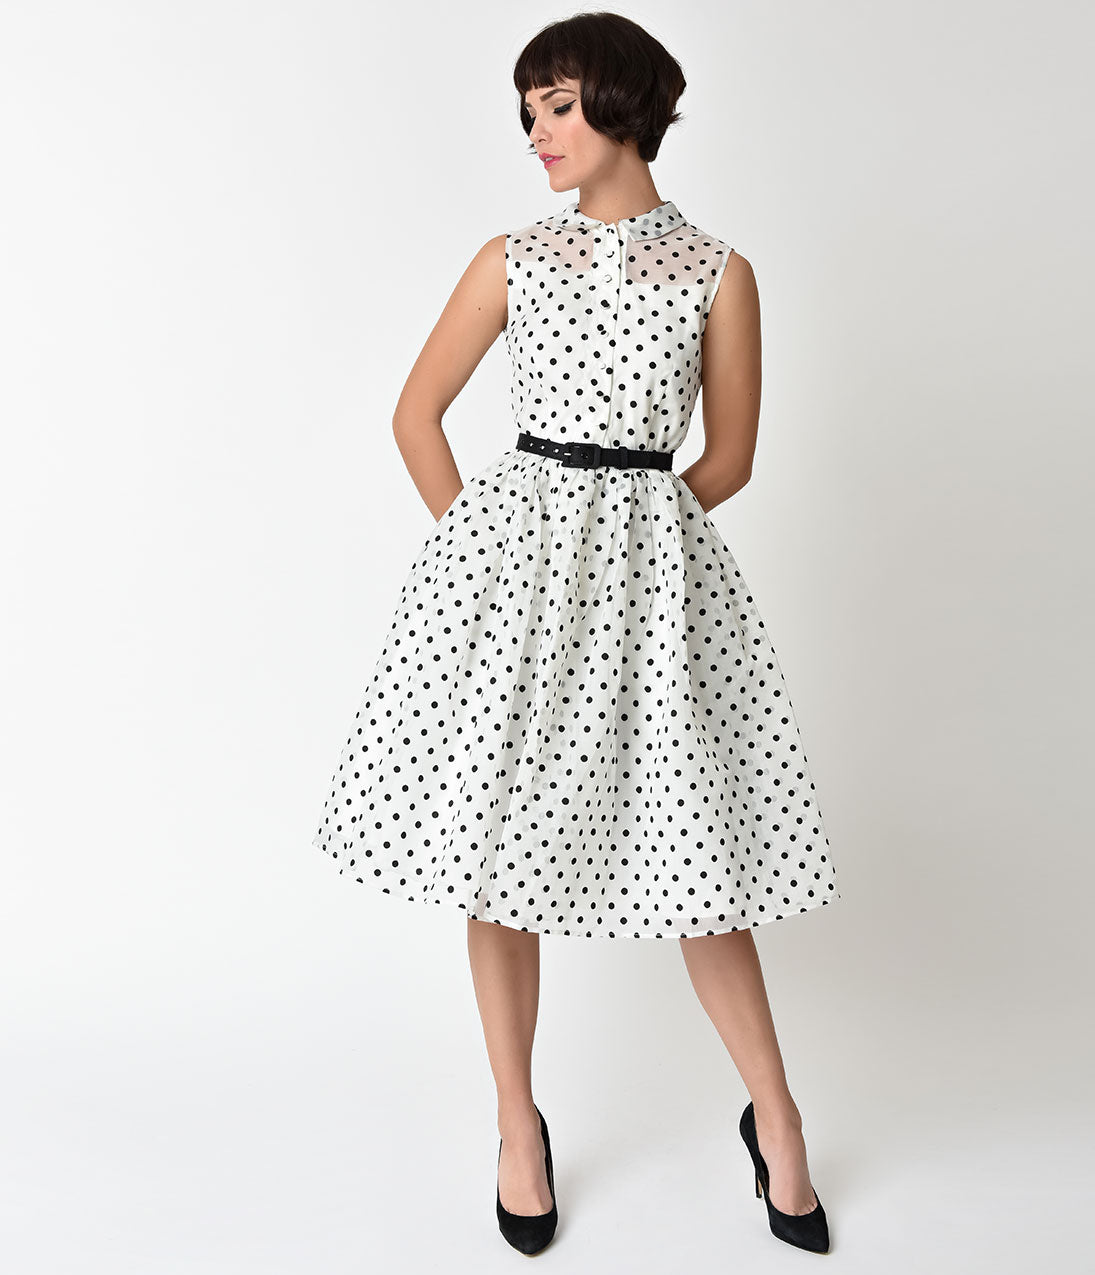 cd35414bd5ab 1950s Cocktail Dresses, Party Dresses Unique Vintage 1950S Style White  Black Dotted Organza Georgia Swing